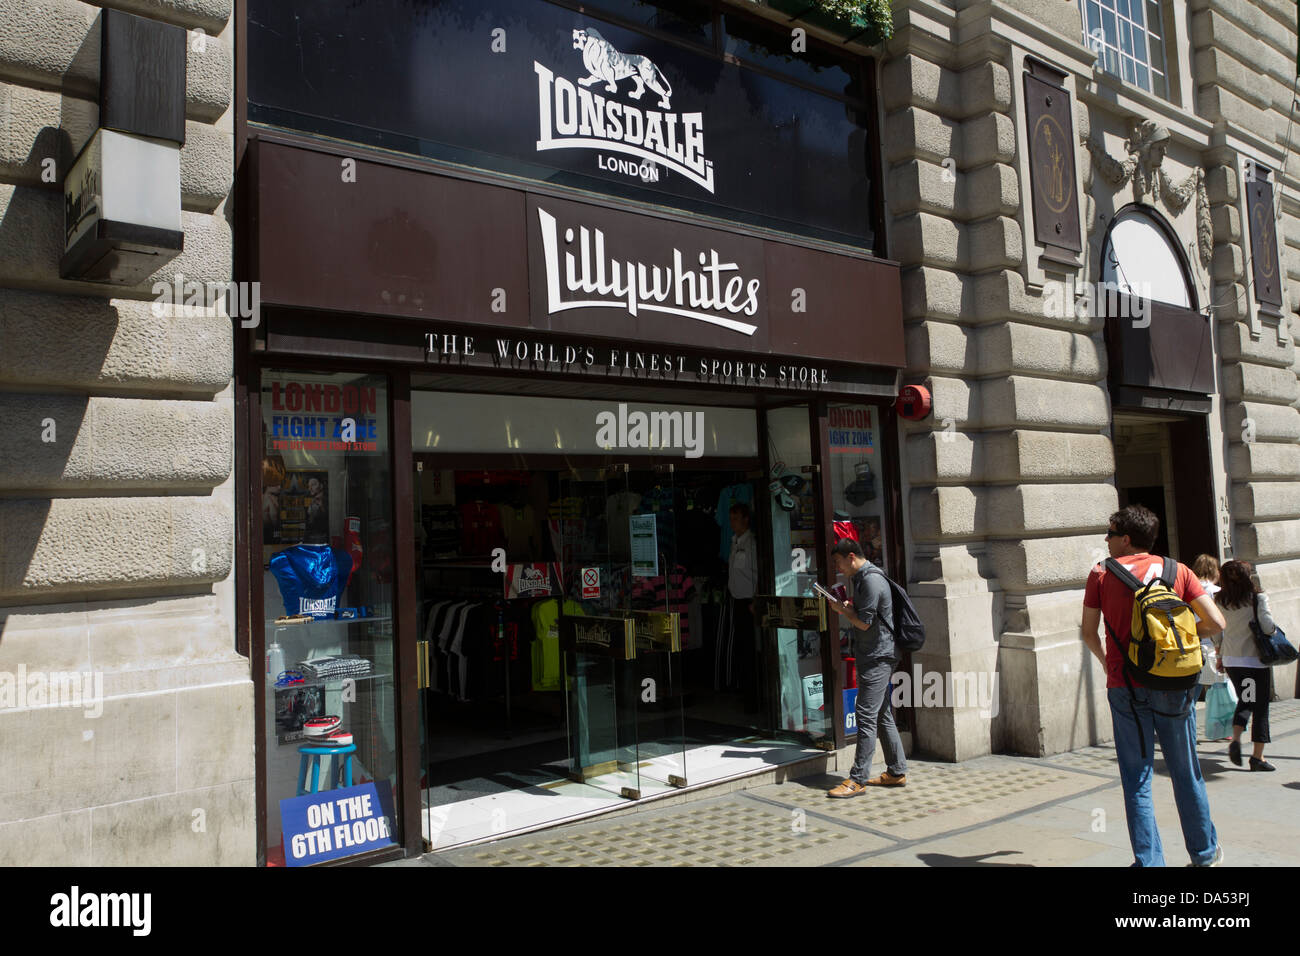 Lillywhites sports shop/department store, Londons West End, London, Engtand, UK - Stock Image